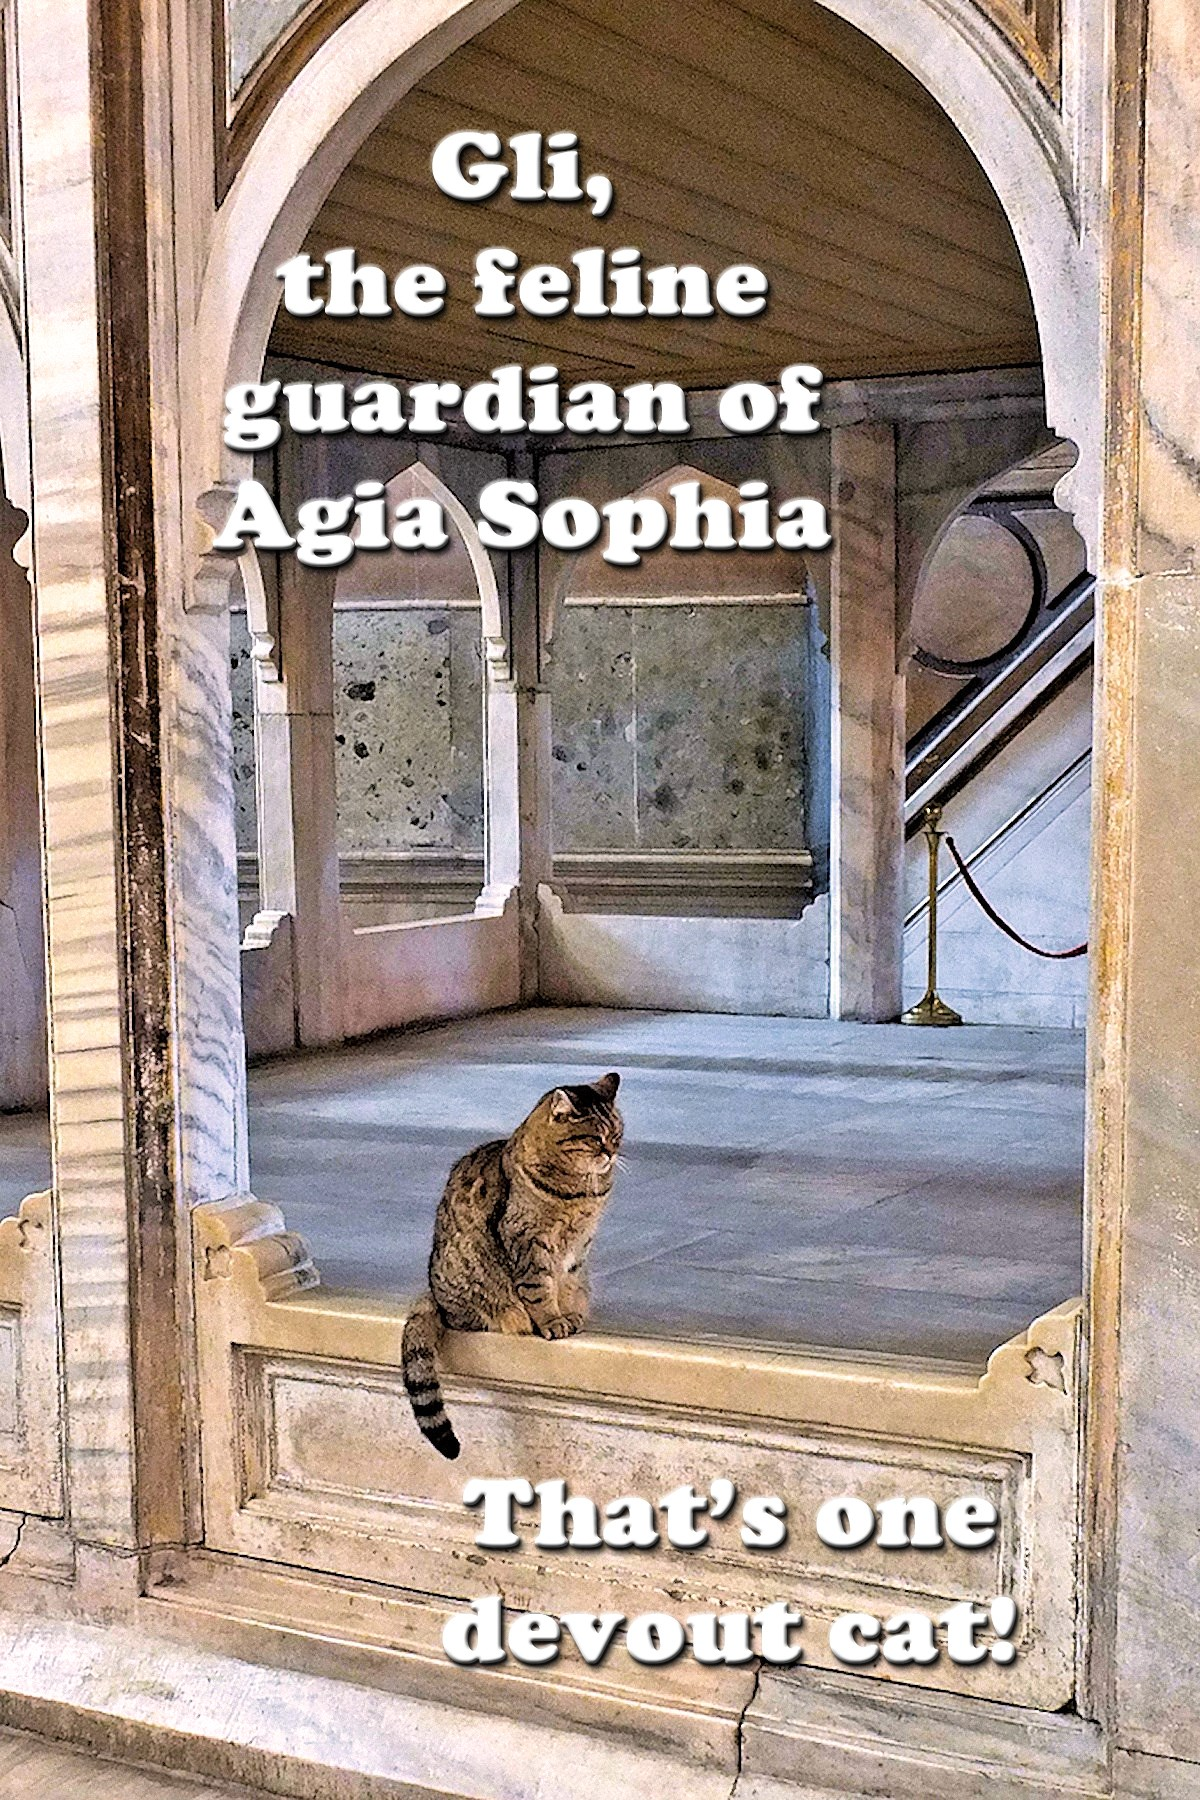 00 cat in agia sophia 210816